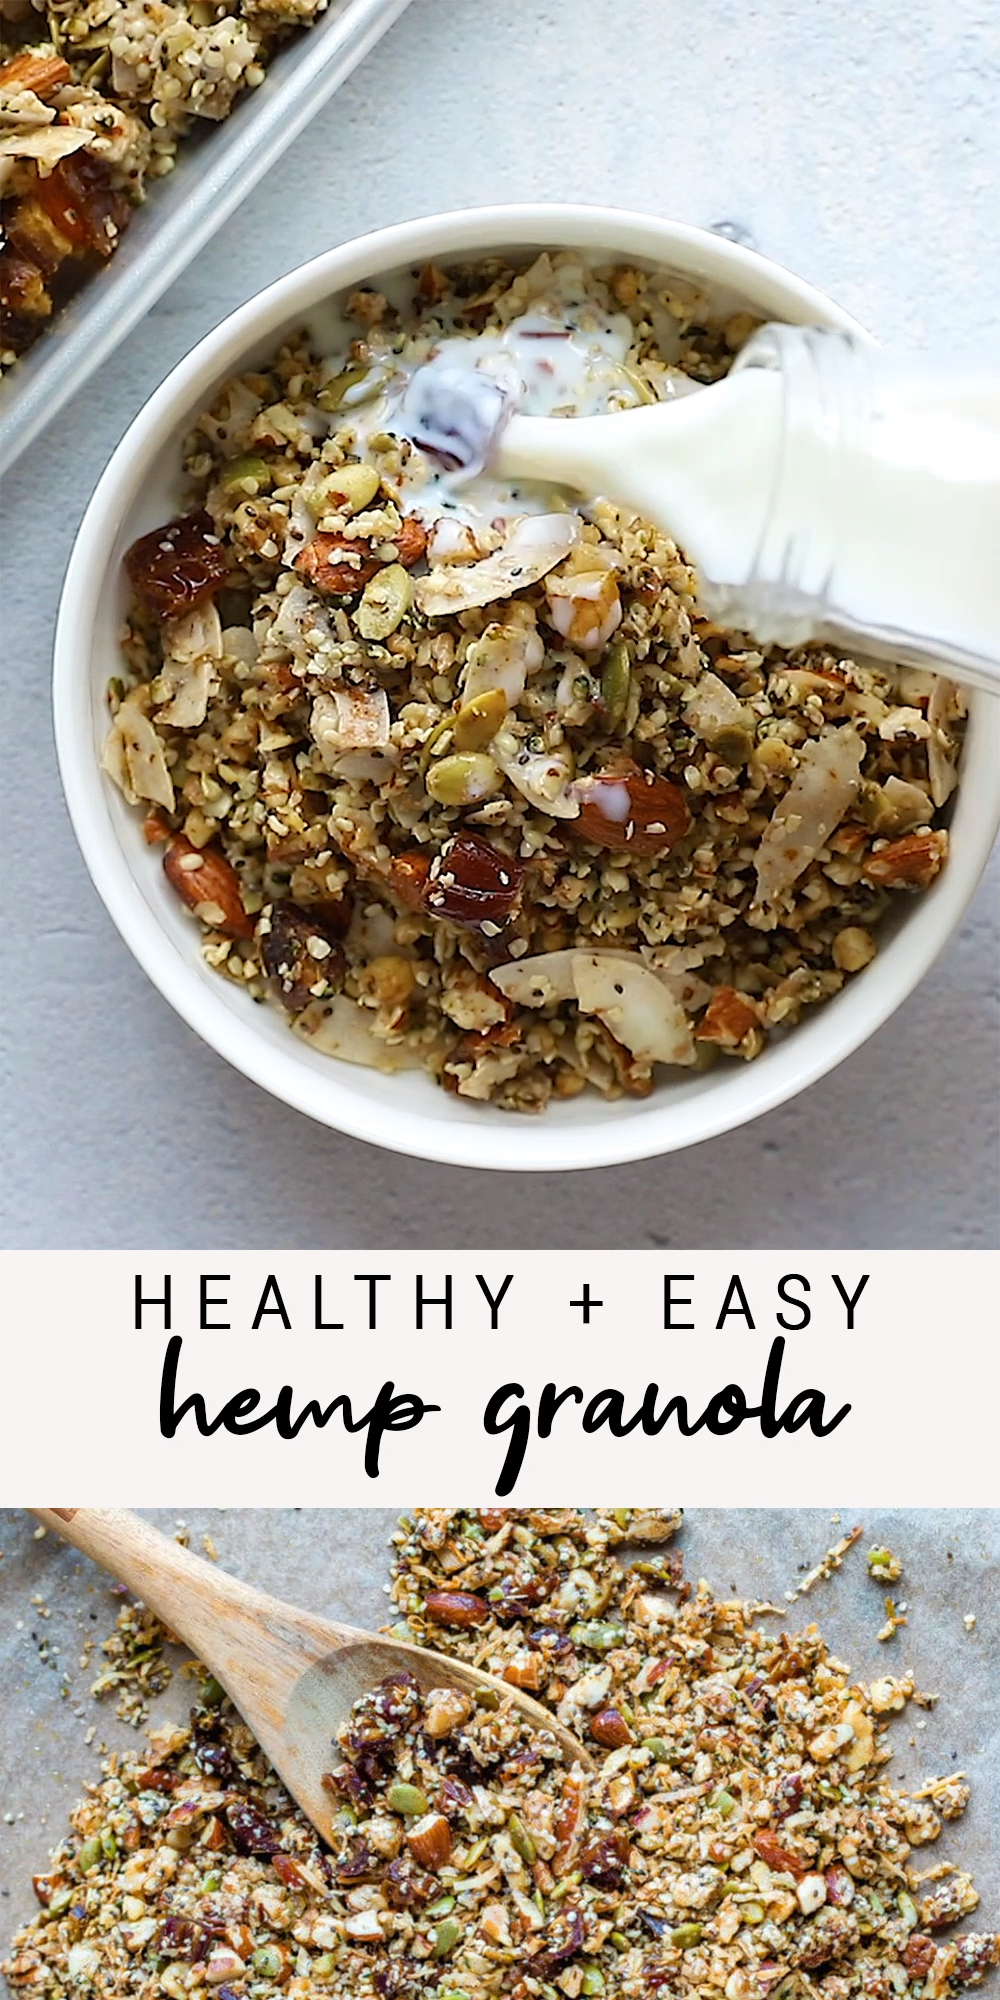 This crunchy hemp granola packs a nutritional punch with a variety of nuts and seeds. It's grain-free, vegan and sweetened only with maple syrup and dates.  #grainfree #lowcarb #maplesyrup #hemp #hempgranola #healthygranola #vegan #eatingbirdfood